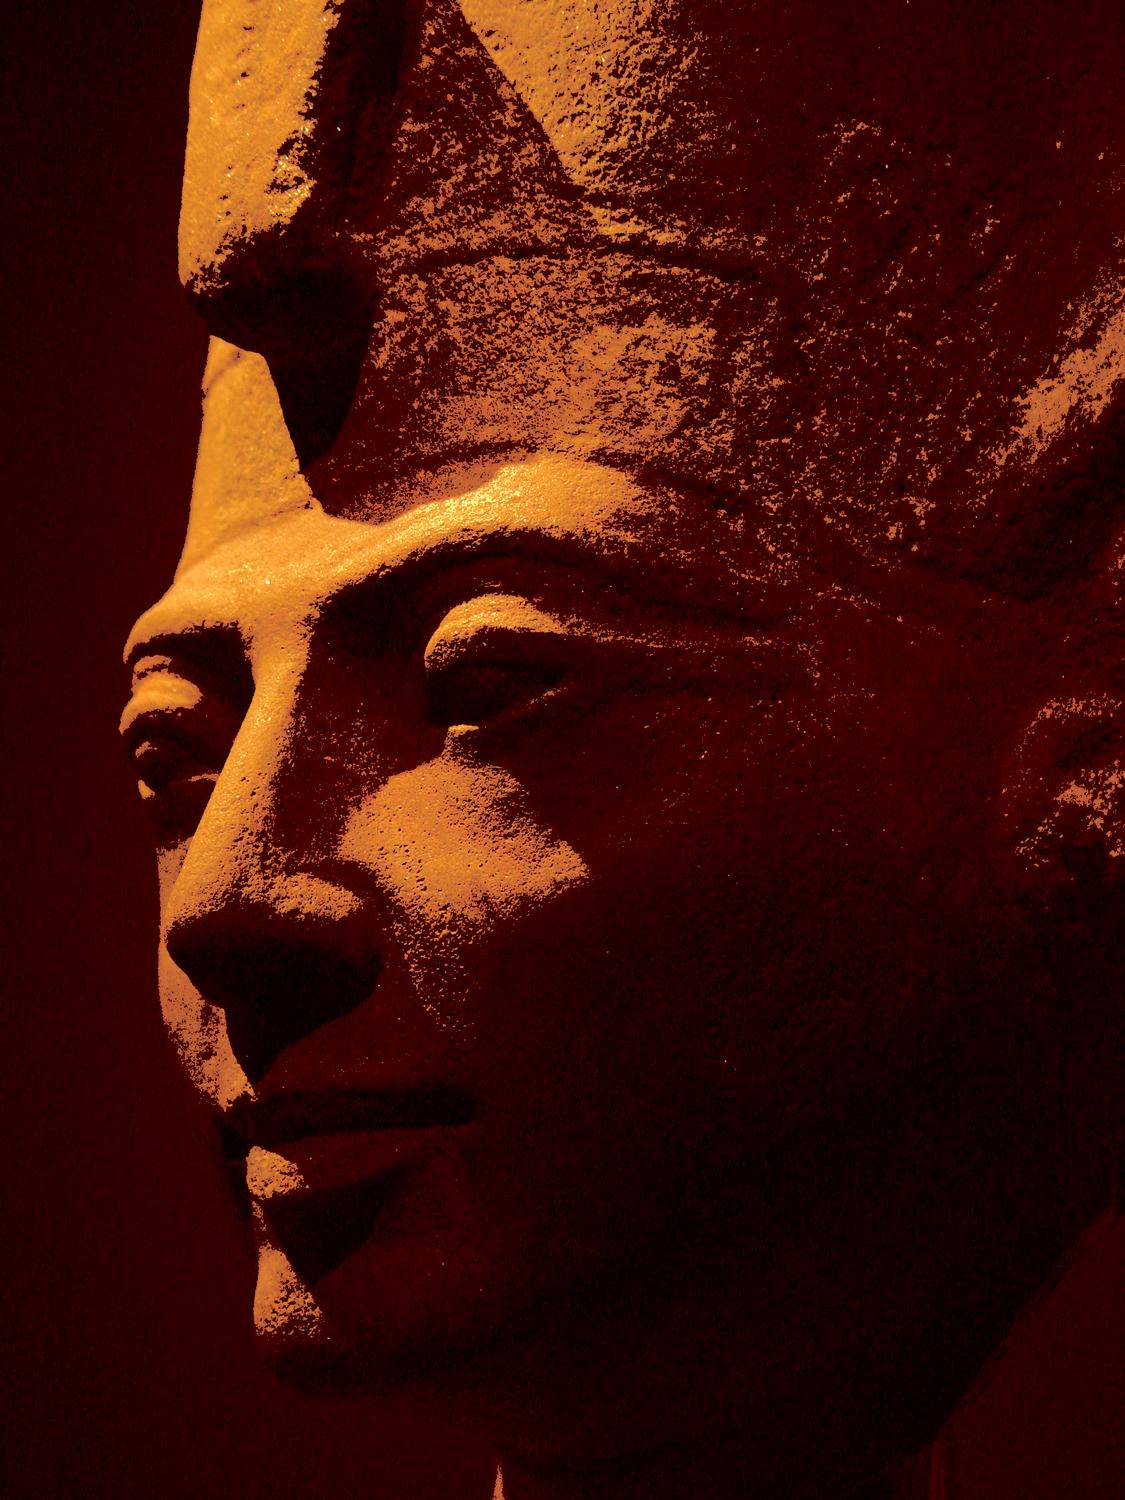 - Out of Egypt - Metropolitan Museum, New York City - - art  - photography - by Tony Karp